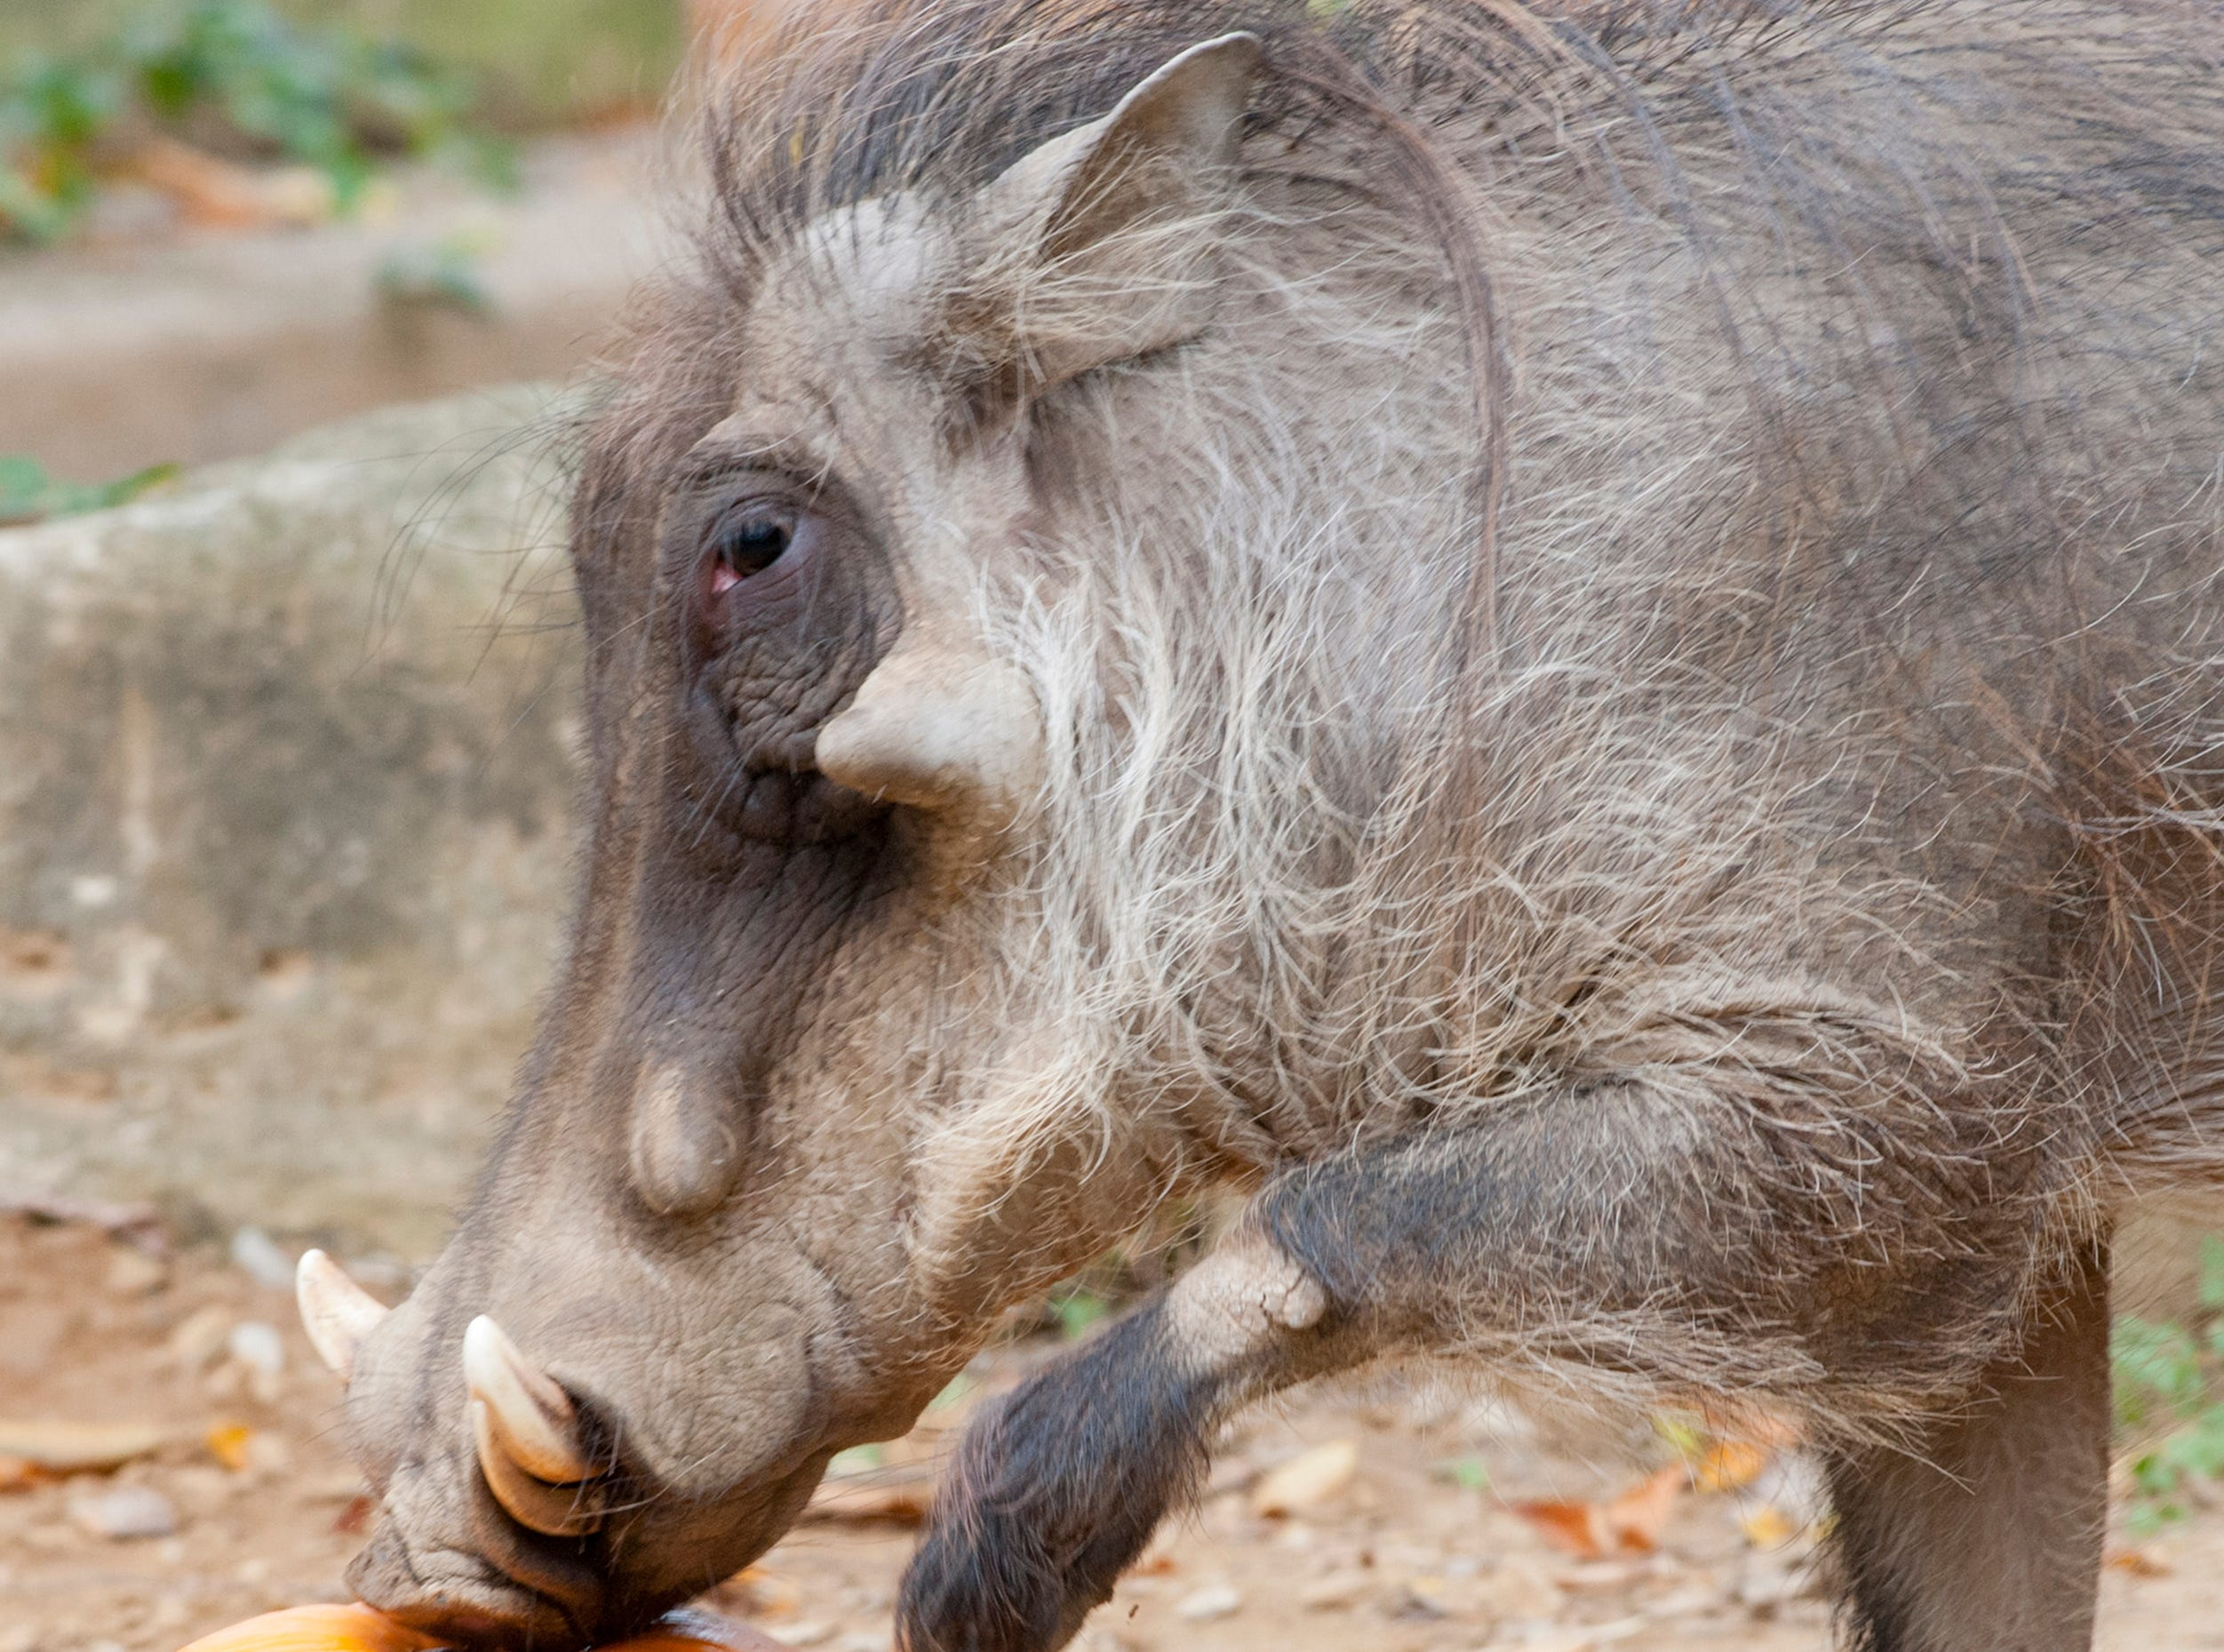 Digger, a warthog at the Louisville Zoo tries to get get into a pumpkin during the zoo's annual pumpkin smash. The pumpkins being fed to the animals are from the zoo's Halloween event. November 04, 2018